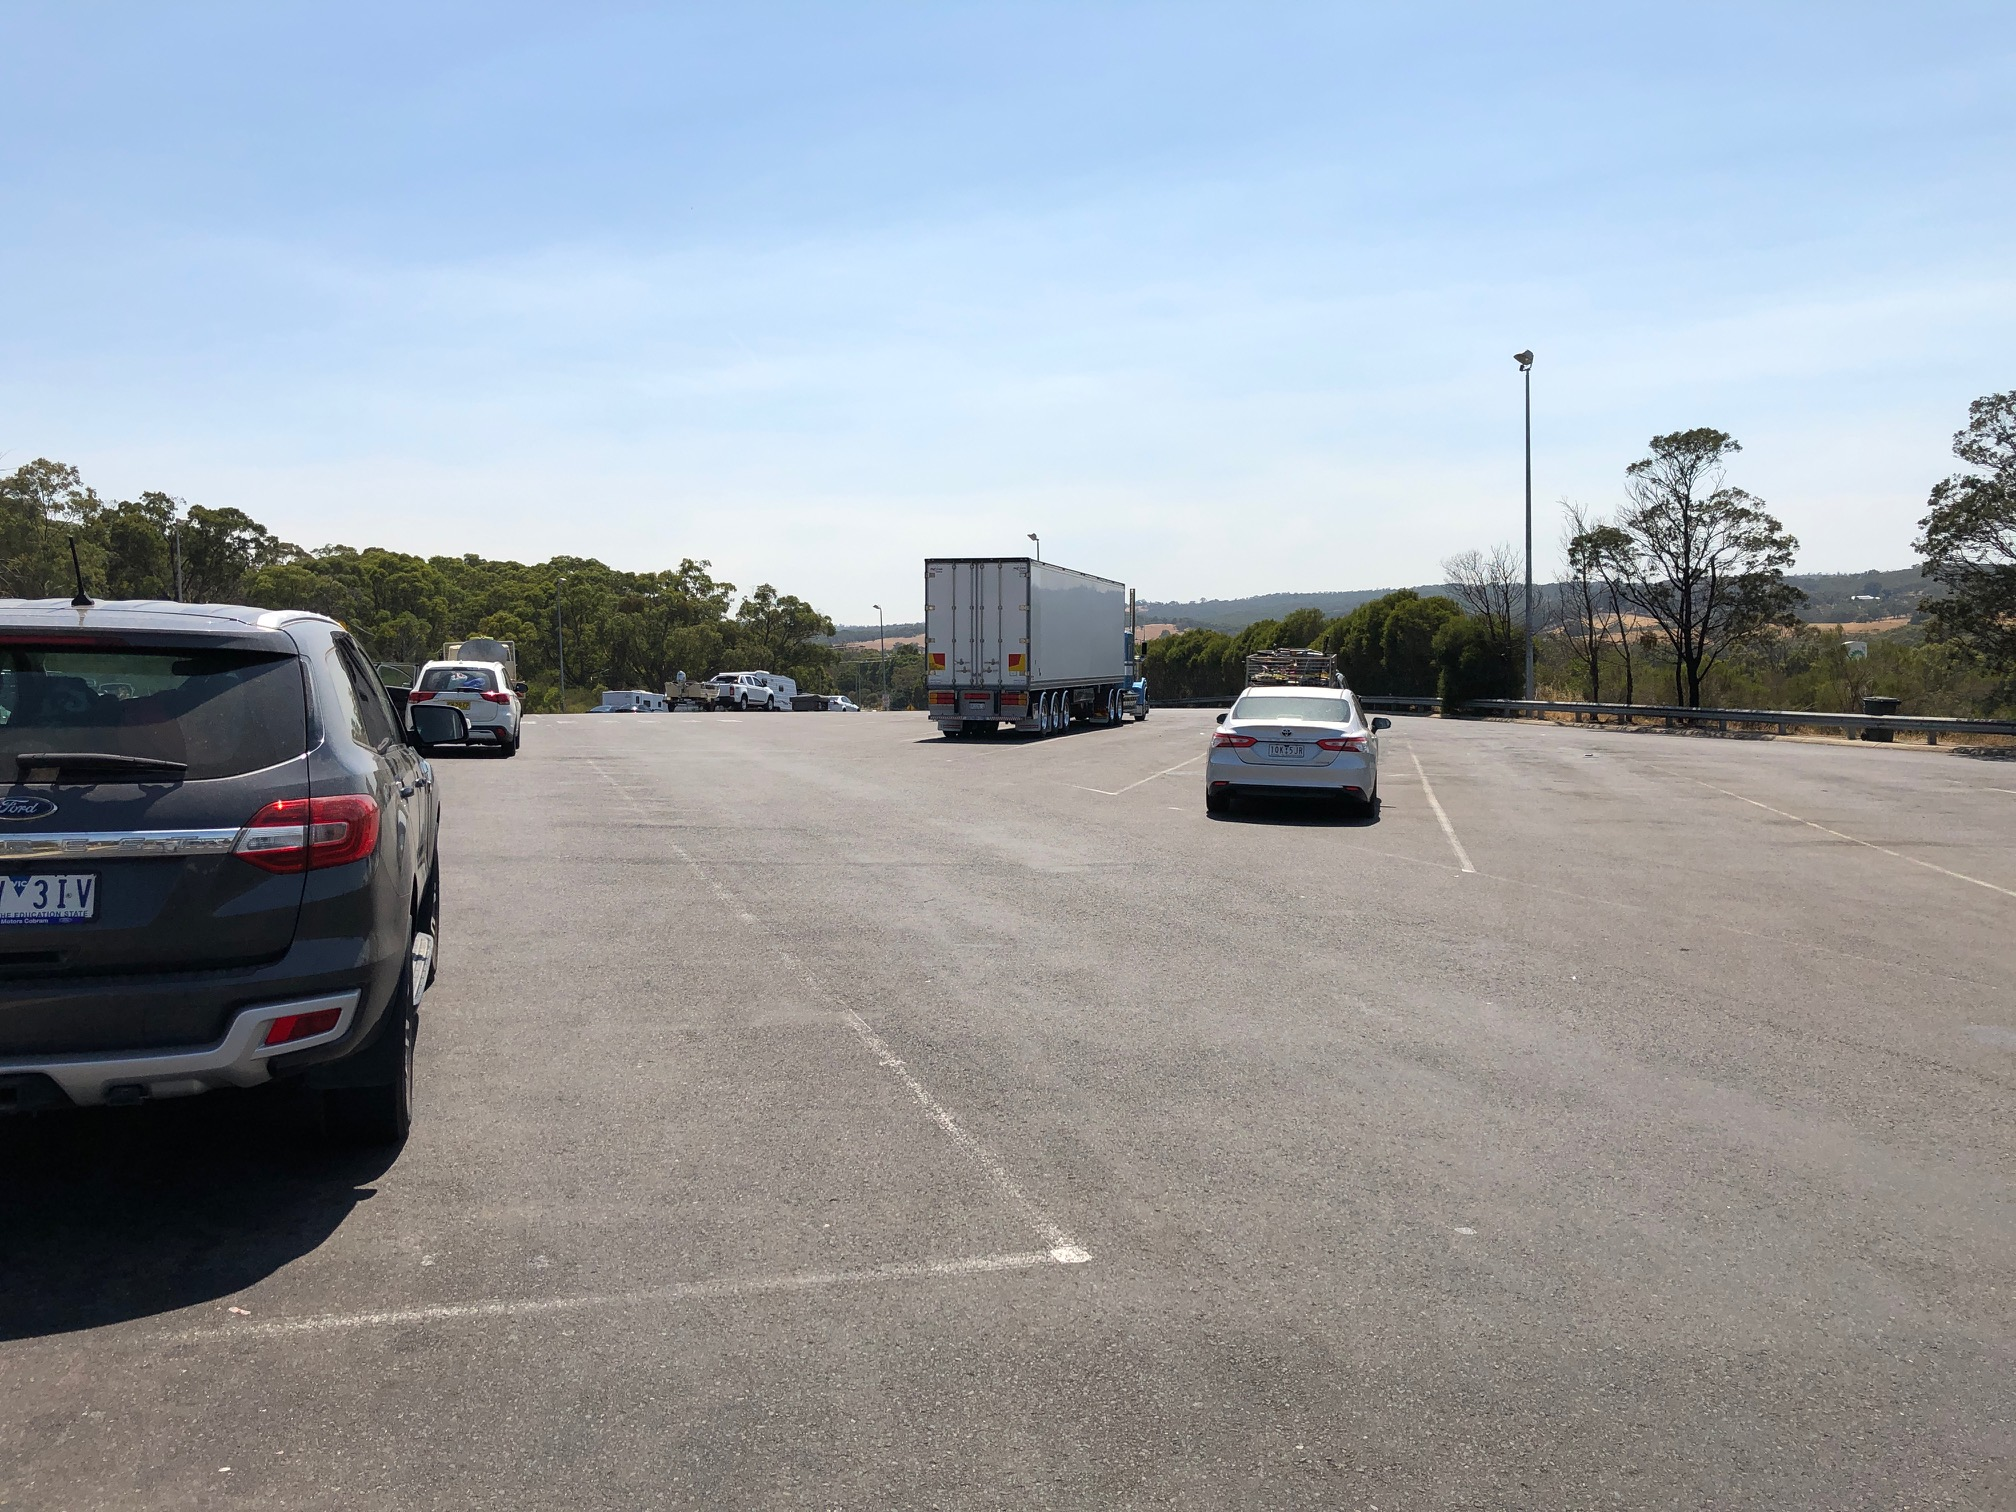 A Day At Bp Northbound In Wallan, Victoria With Cars Parked In The Truck Bays